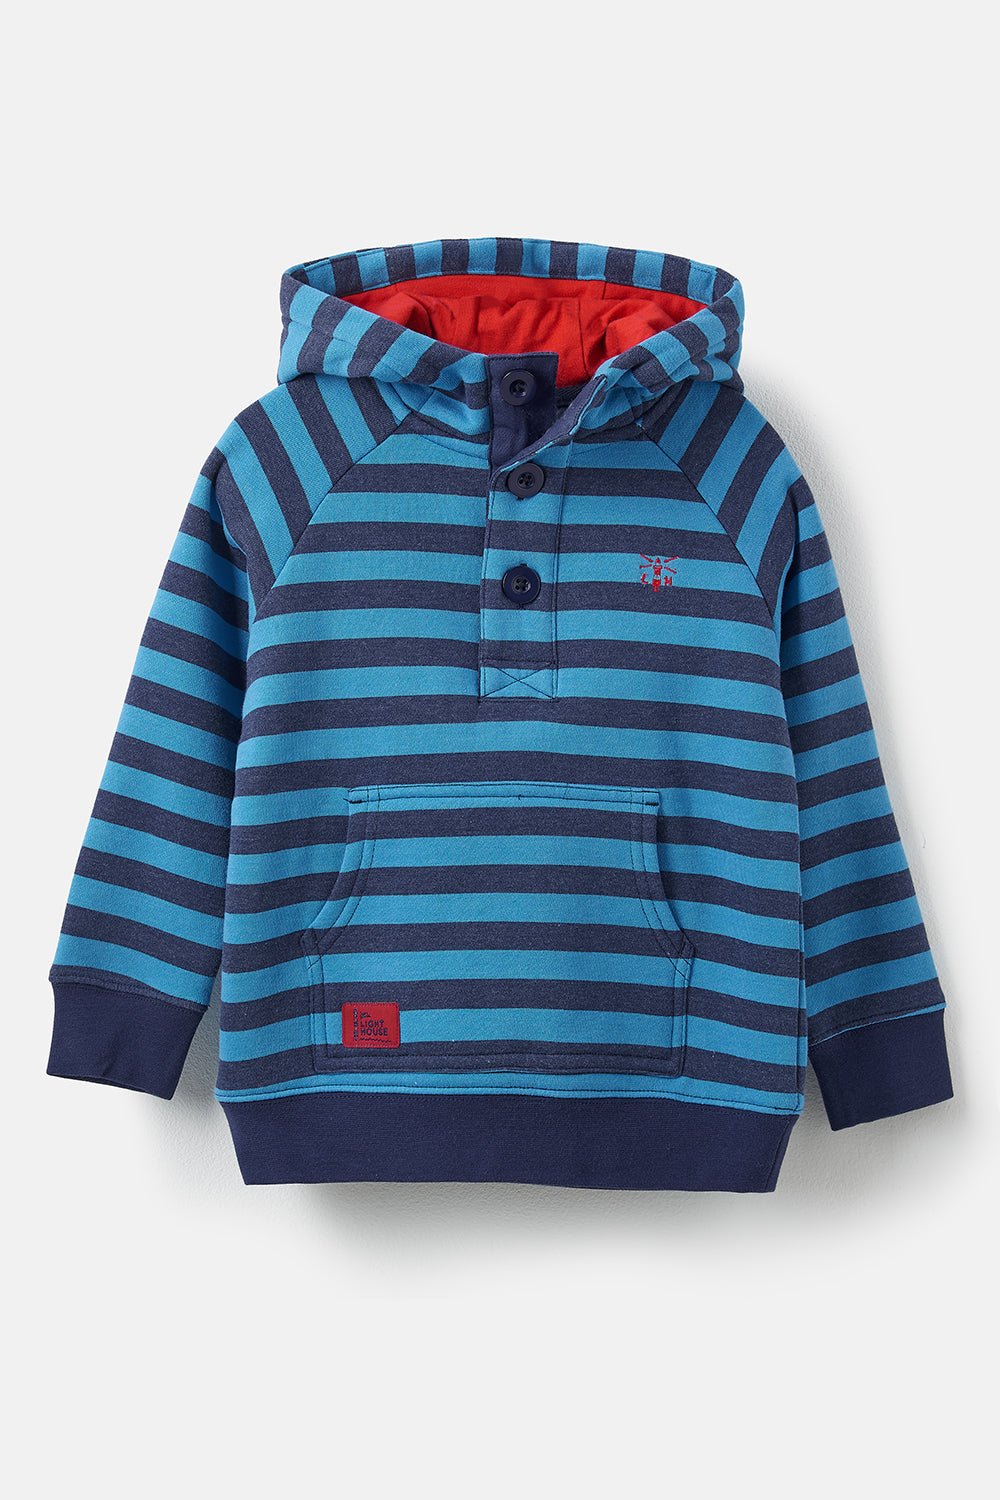 Lighthouse Jack Boy's Warm Hoodie - Blue Navy Stripe